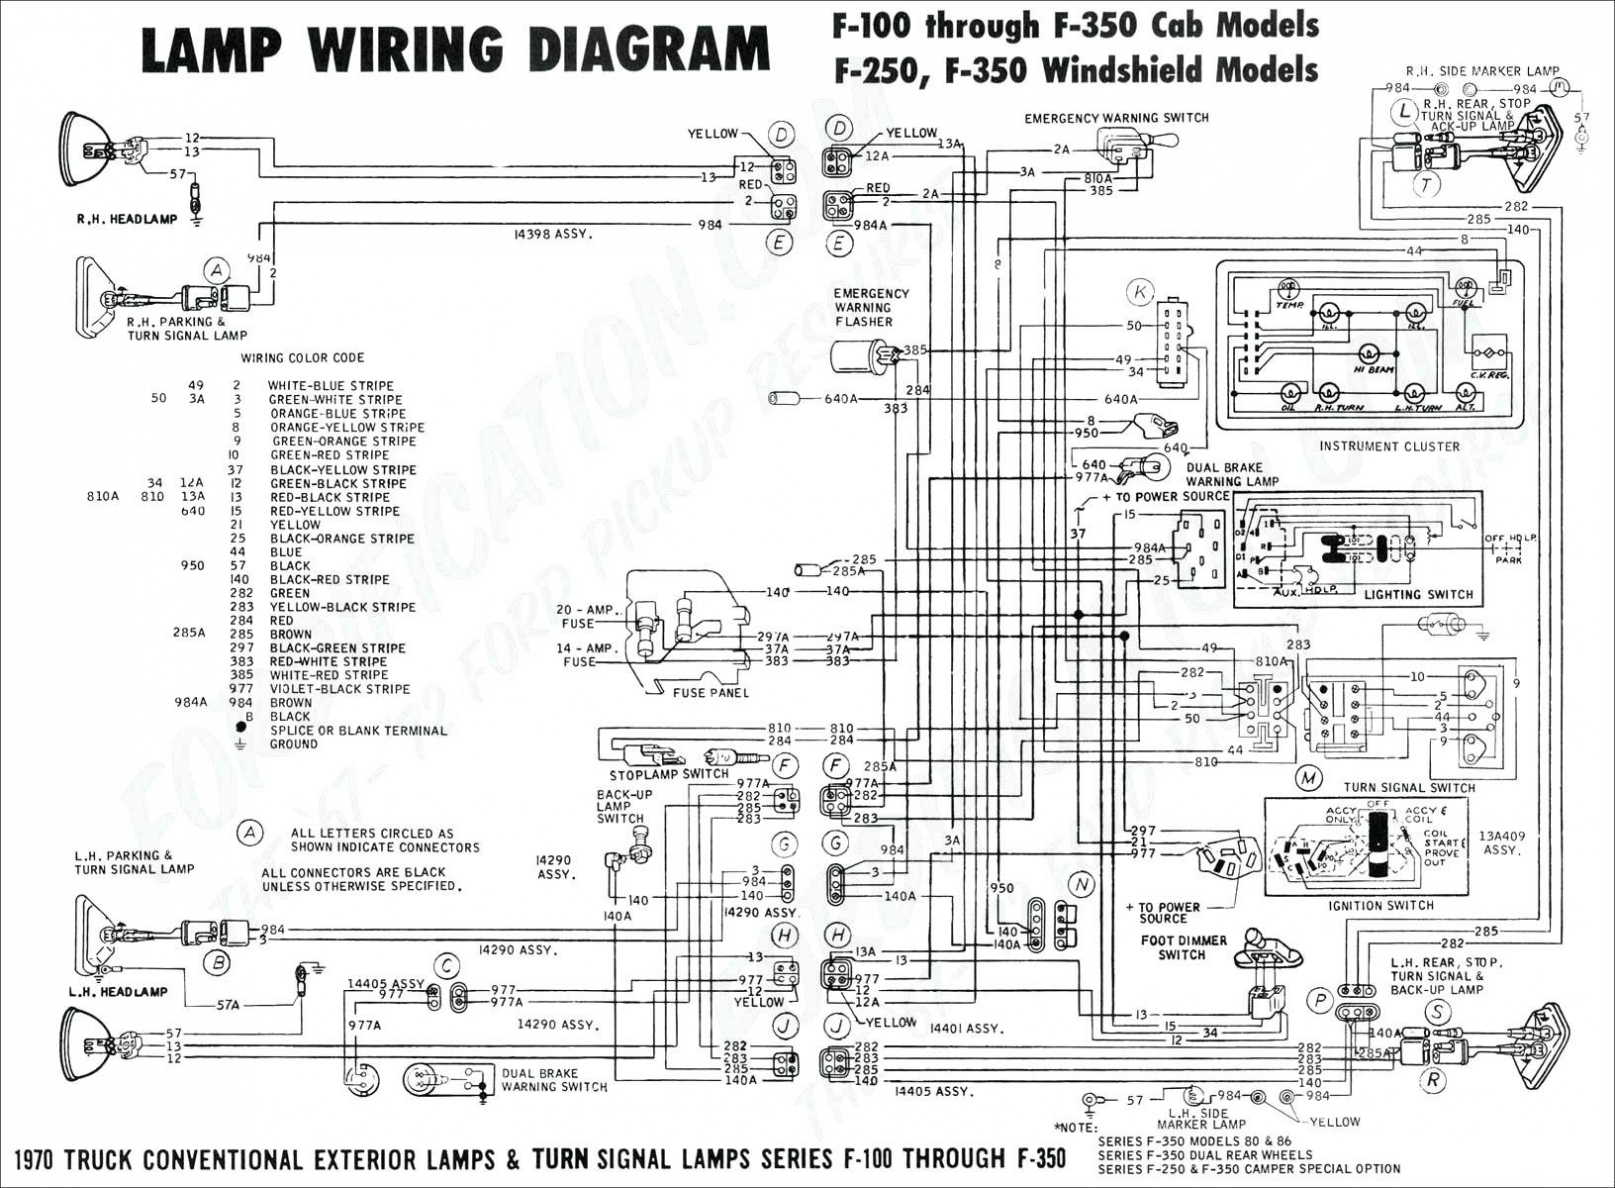 1999 Ford F 150 Dome Light Wiring Diagram | Wiring Liry F Dome Light Wiring Diagram on